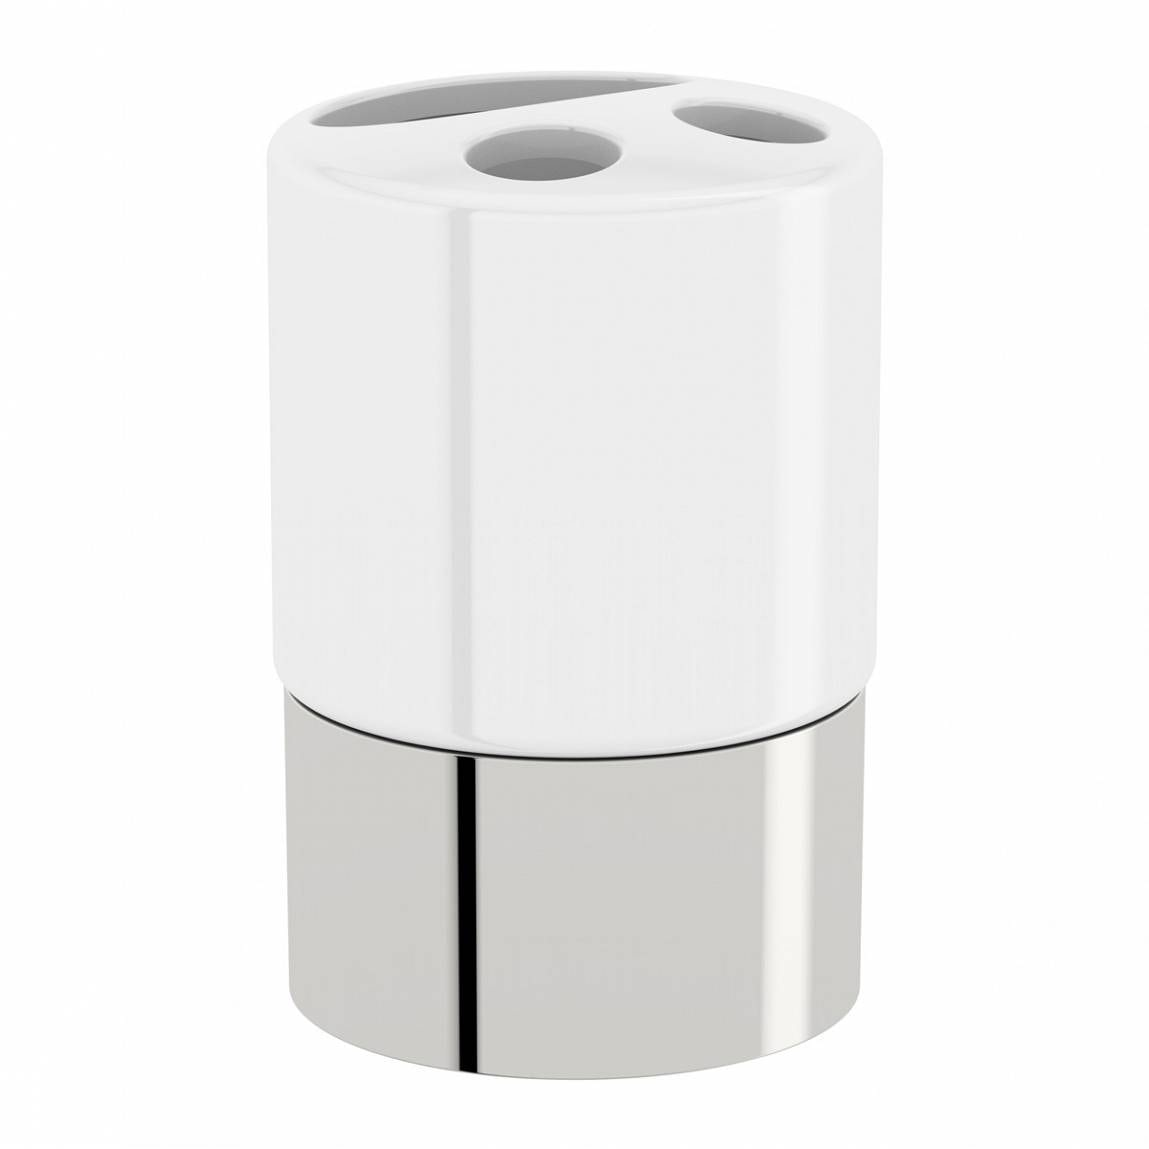 Options Freestanding Ceramic Toothbrush Holder